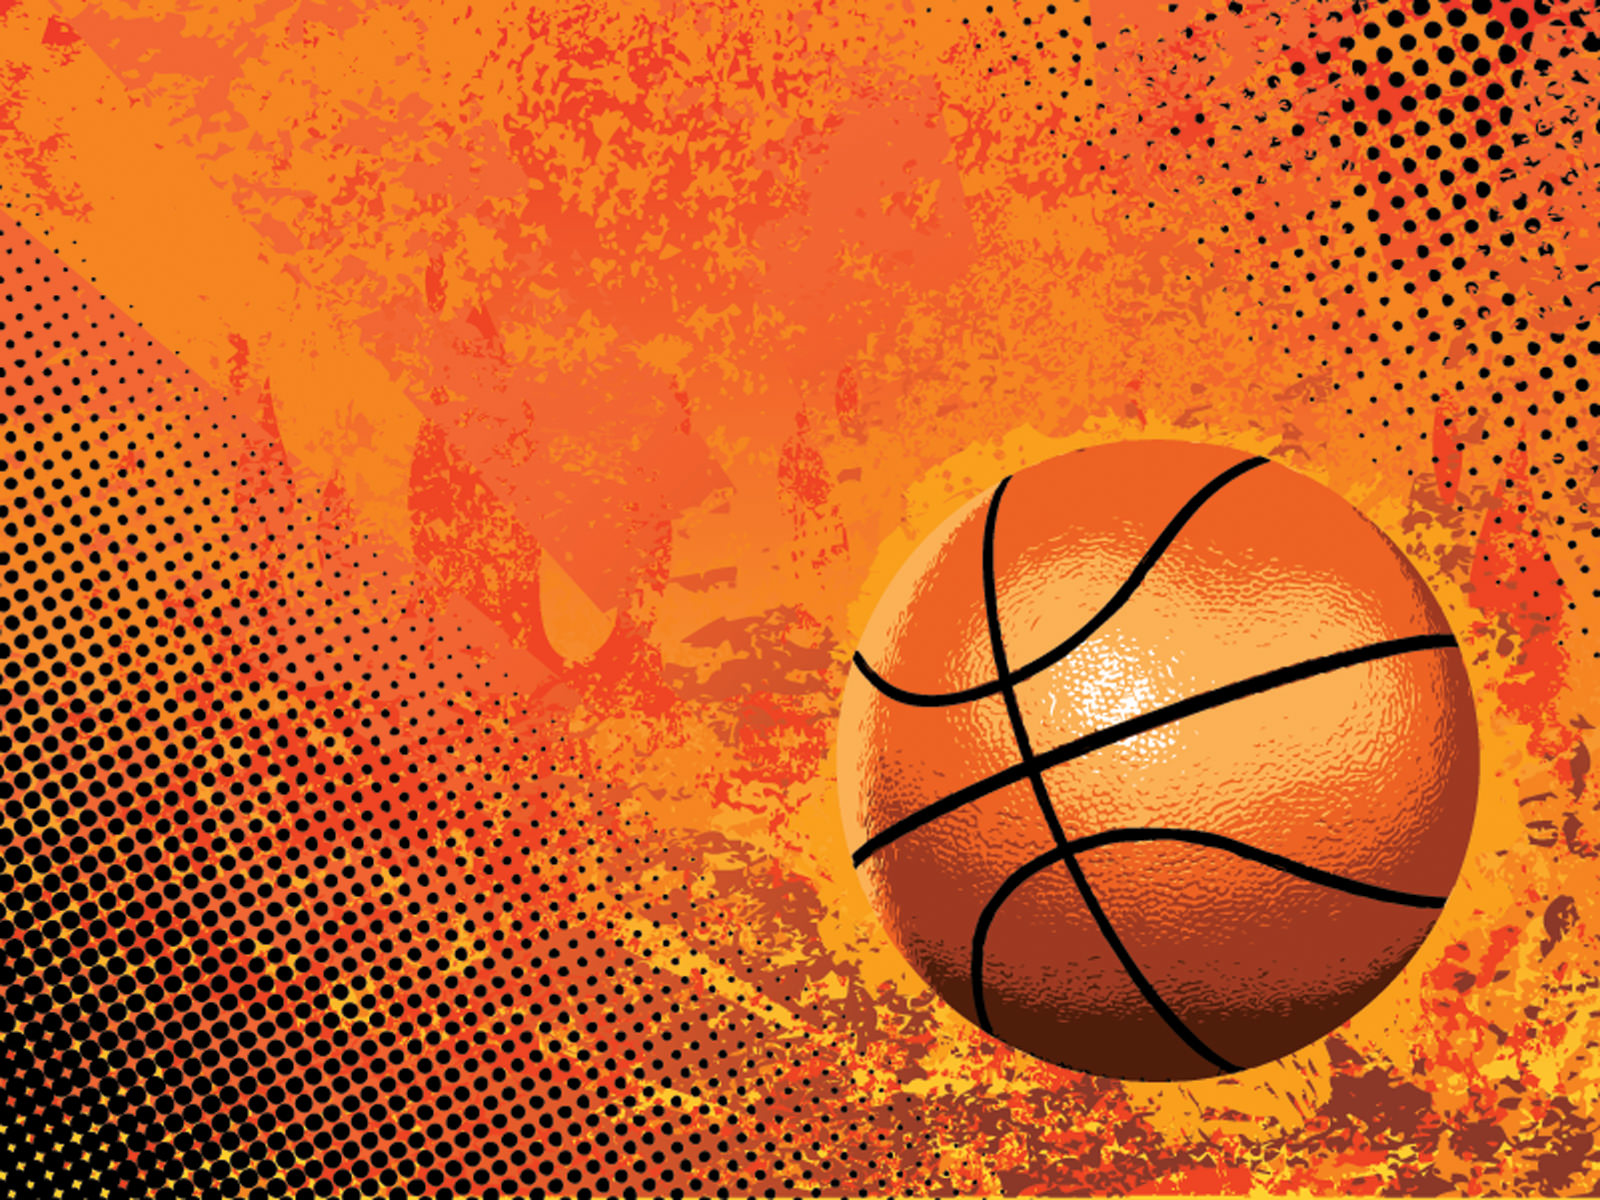 30+ Basketball Backgrounds, Wallpapers, Images, Pictures | Design ...